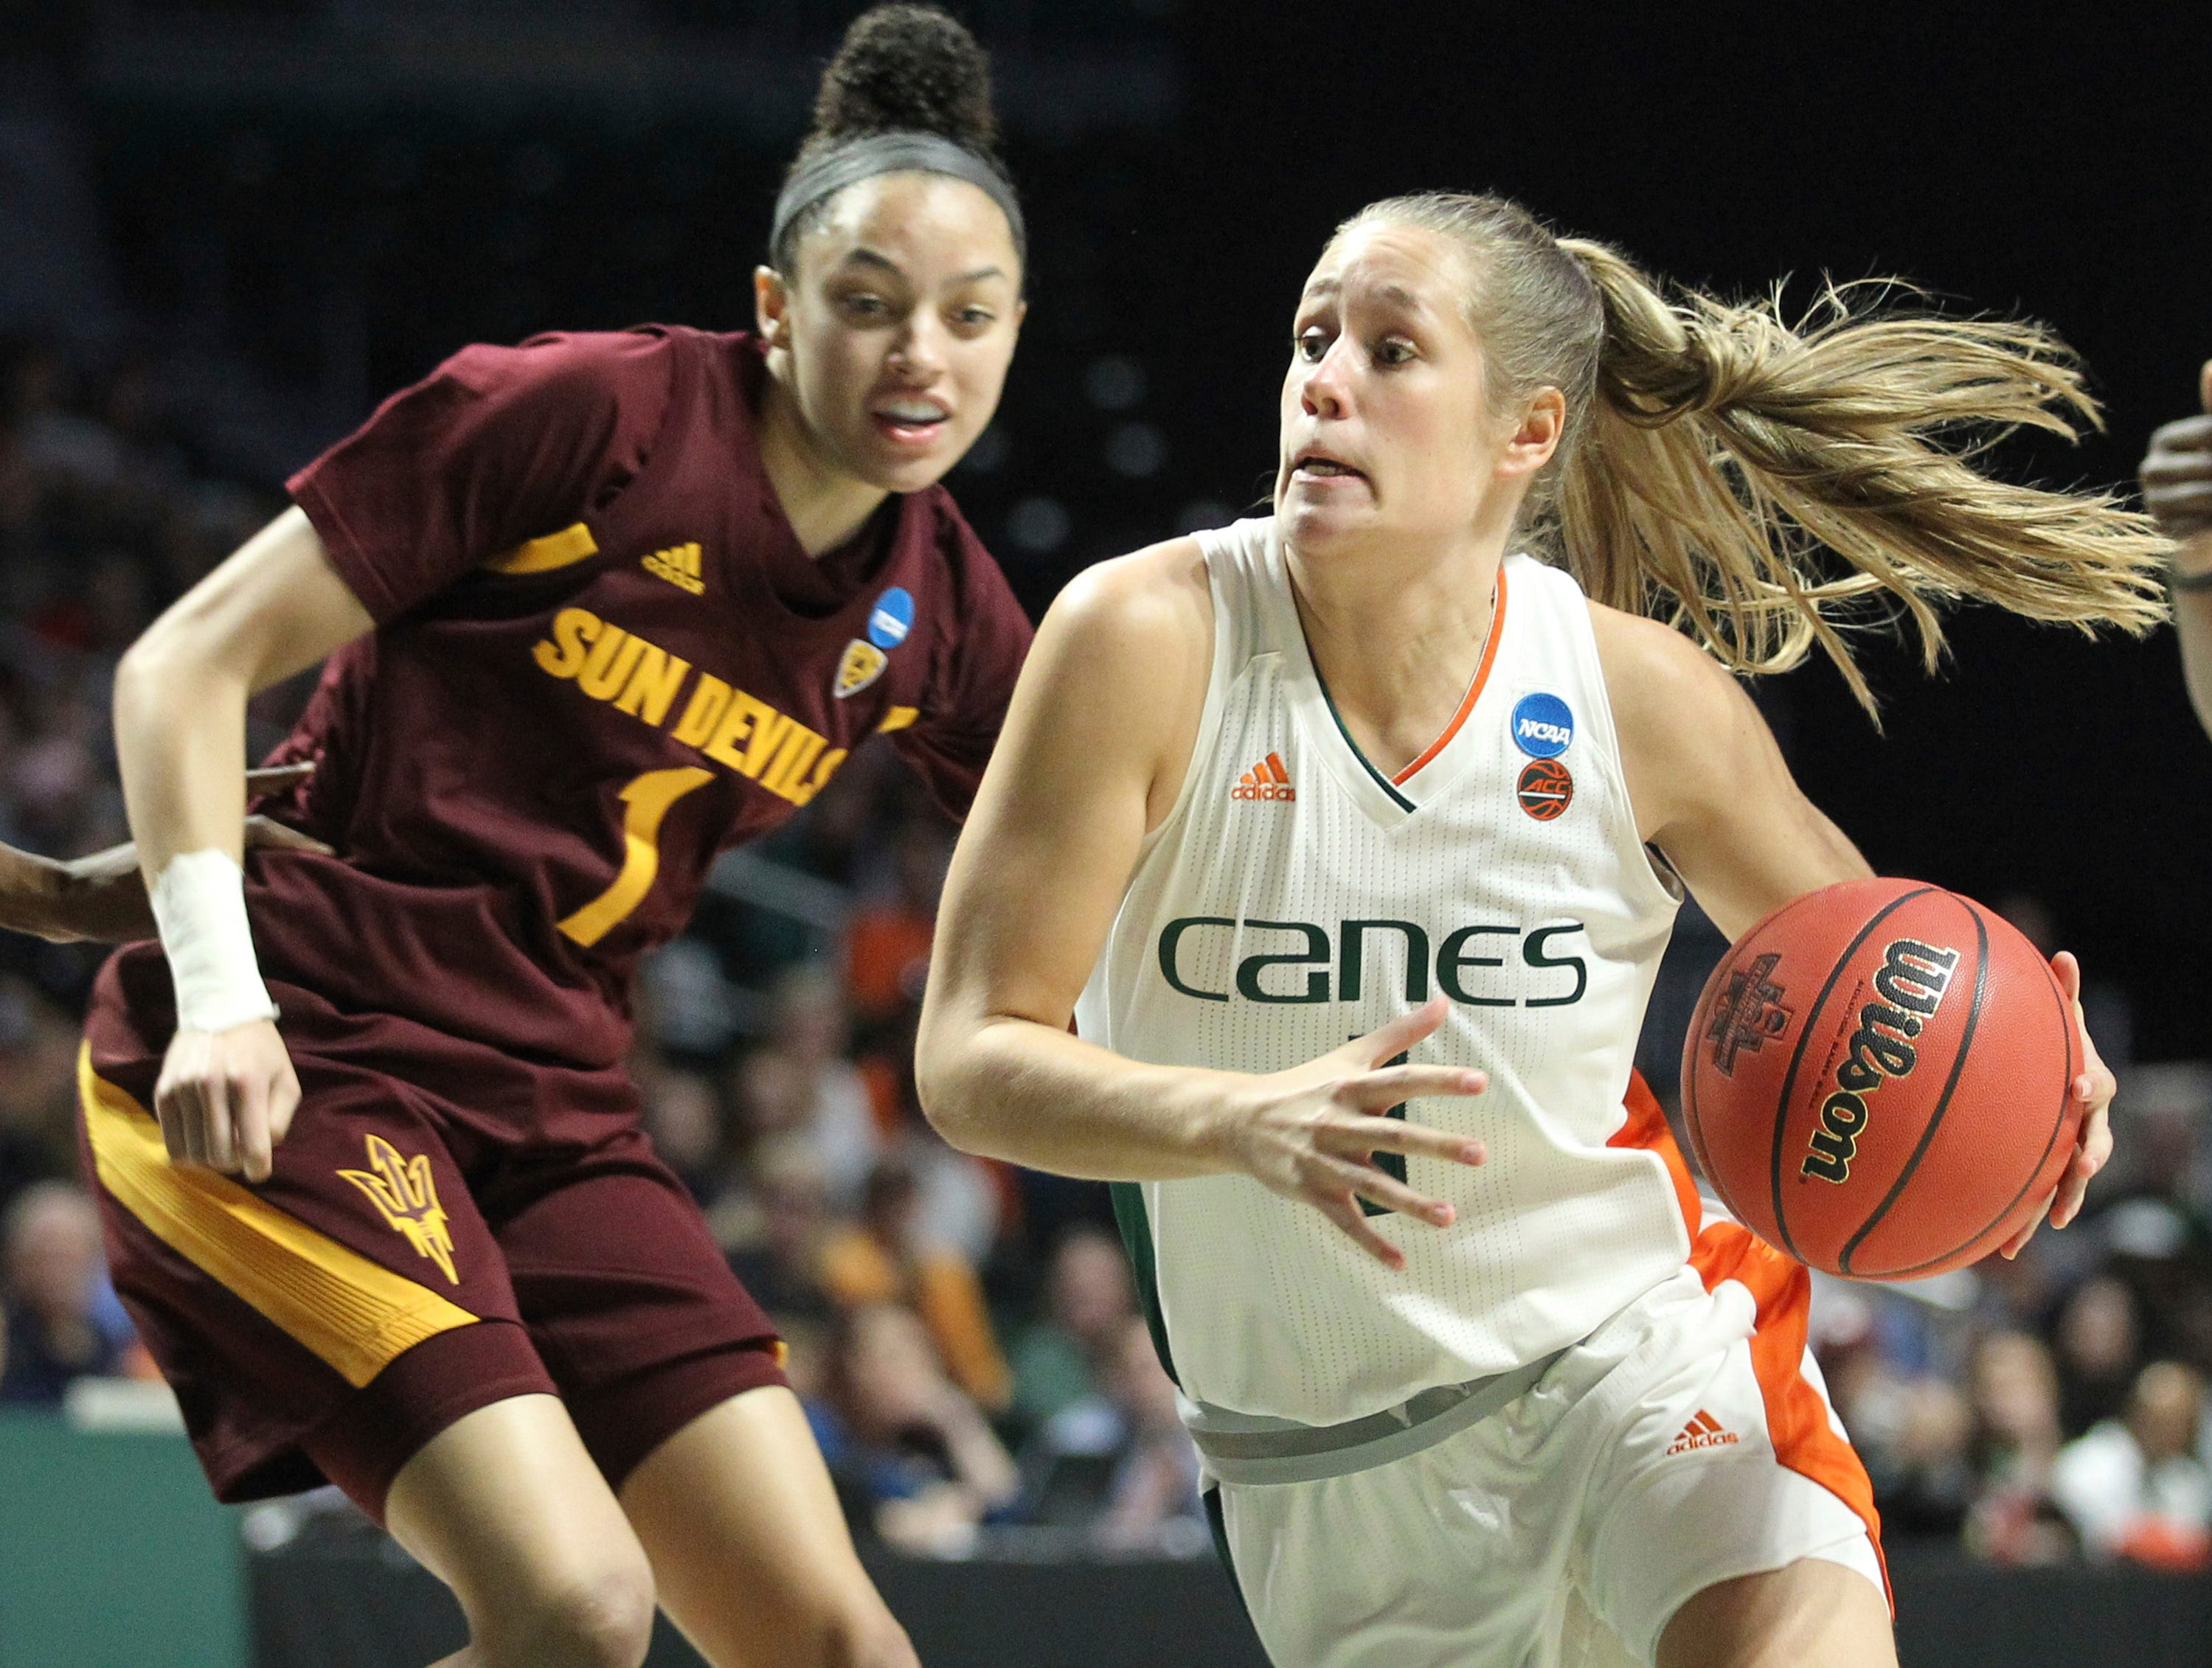 Miami's Laura Cornelius, center, moves the ball past Arizona State's Reili Richardson (1) during a second-round women's college basketball game in the NCAA Tournament, Sunday, March 24, 2019, in Coral Gables, Fla. (AP Photo/Luis M. Alvarez)